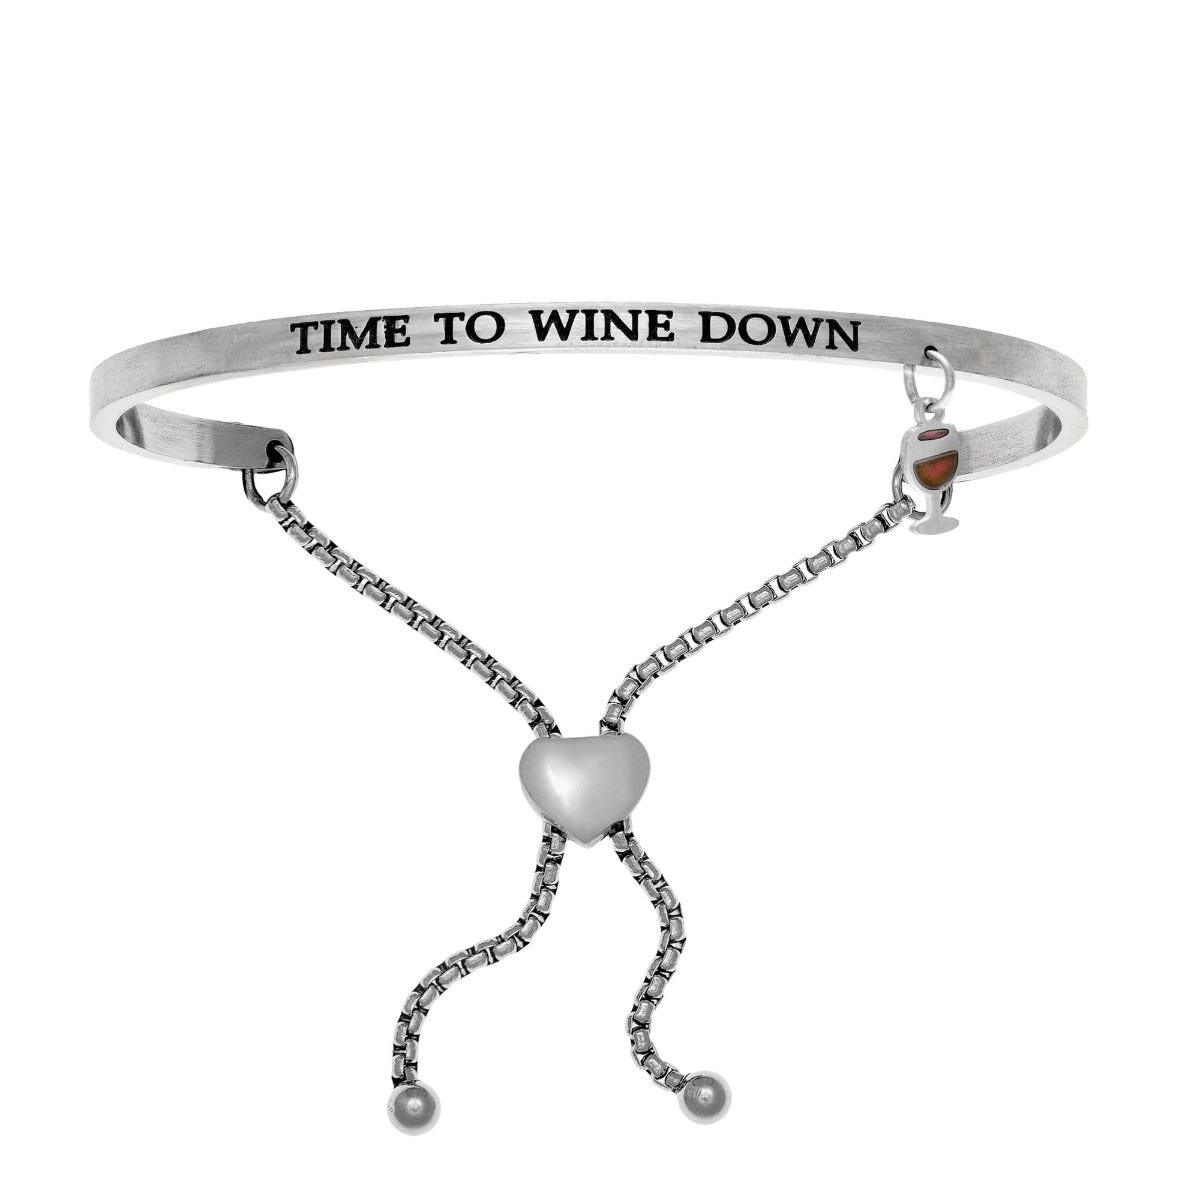 Time To Wine Down. Intuitions Bolo Bracelet in White Stainless Steel